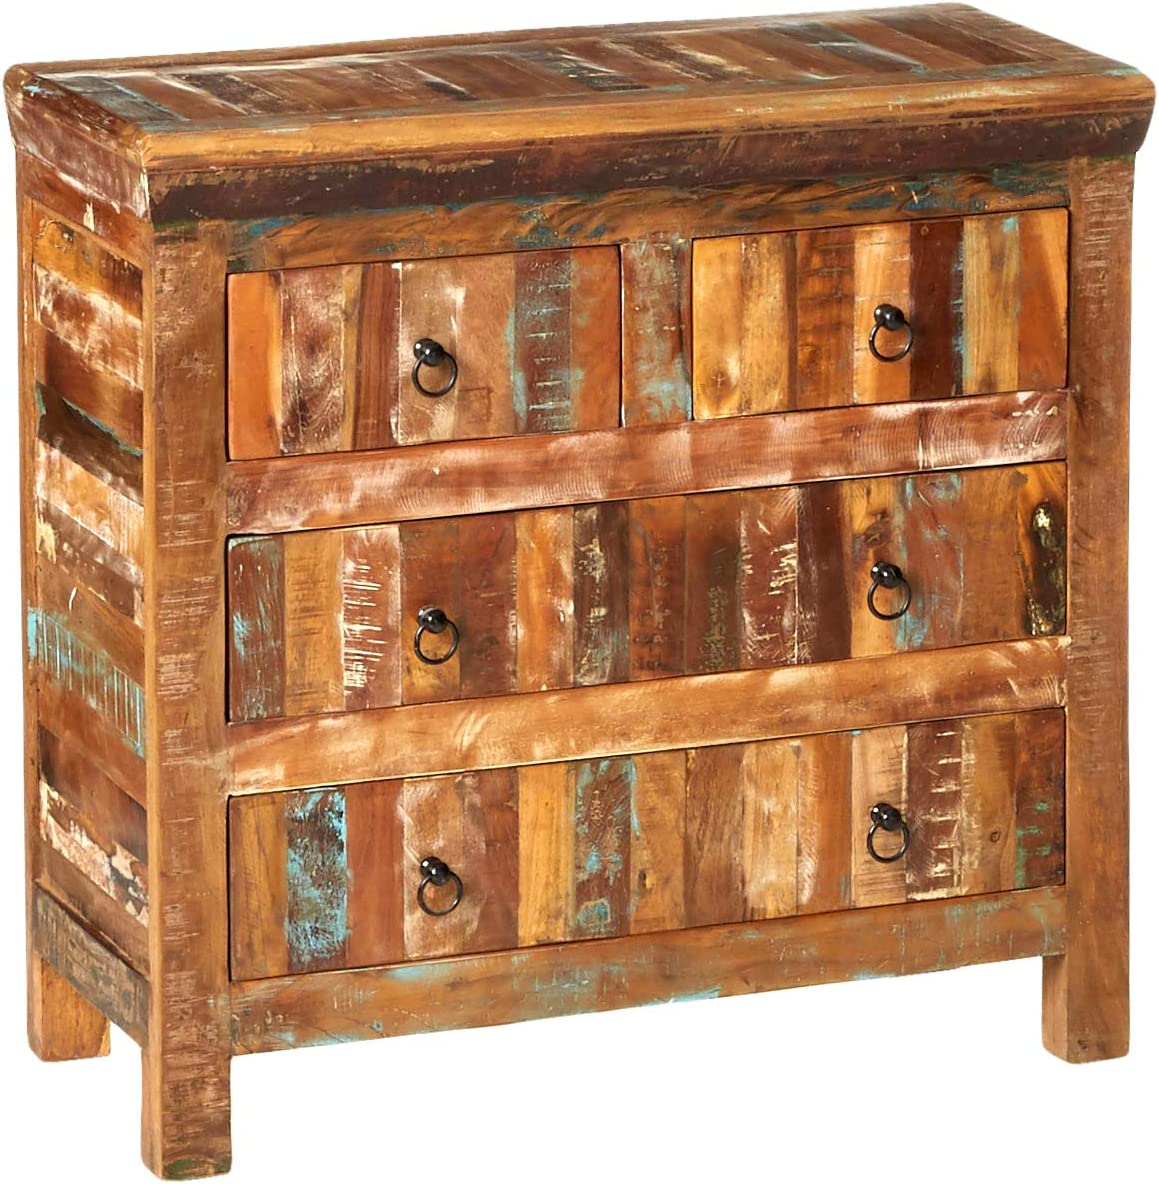 Coaster Home Furnishings Coaster Transitional 4 Drawer Reclaimed Wood Accent Cabinet